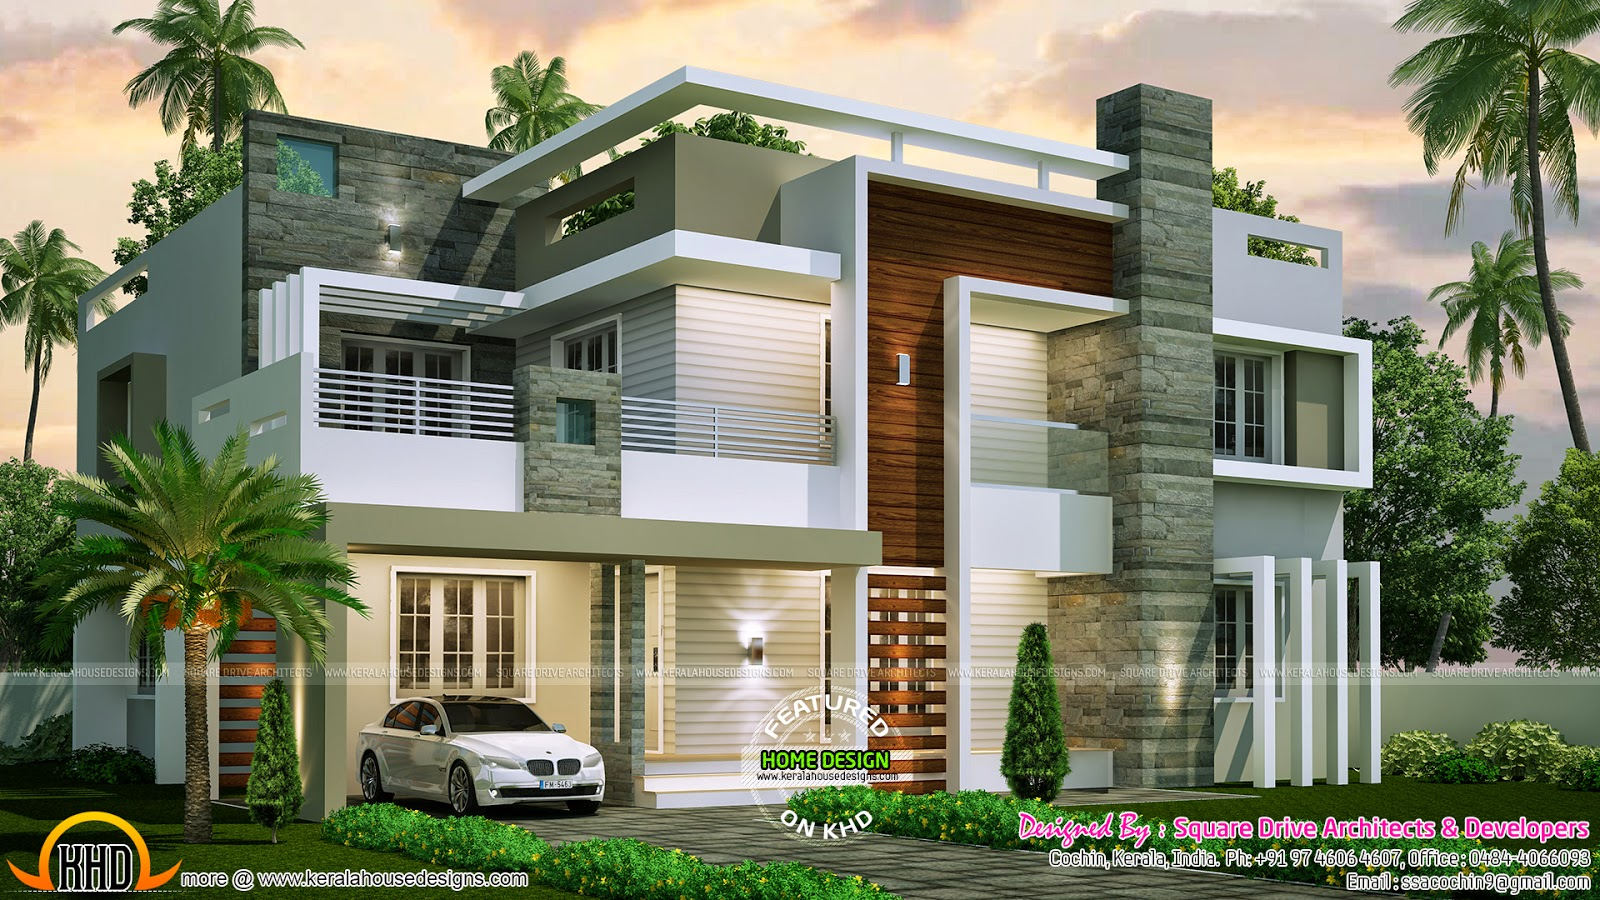 4 bedroom contemporary home design kerala home design for Modern house models pictures